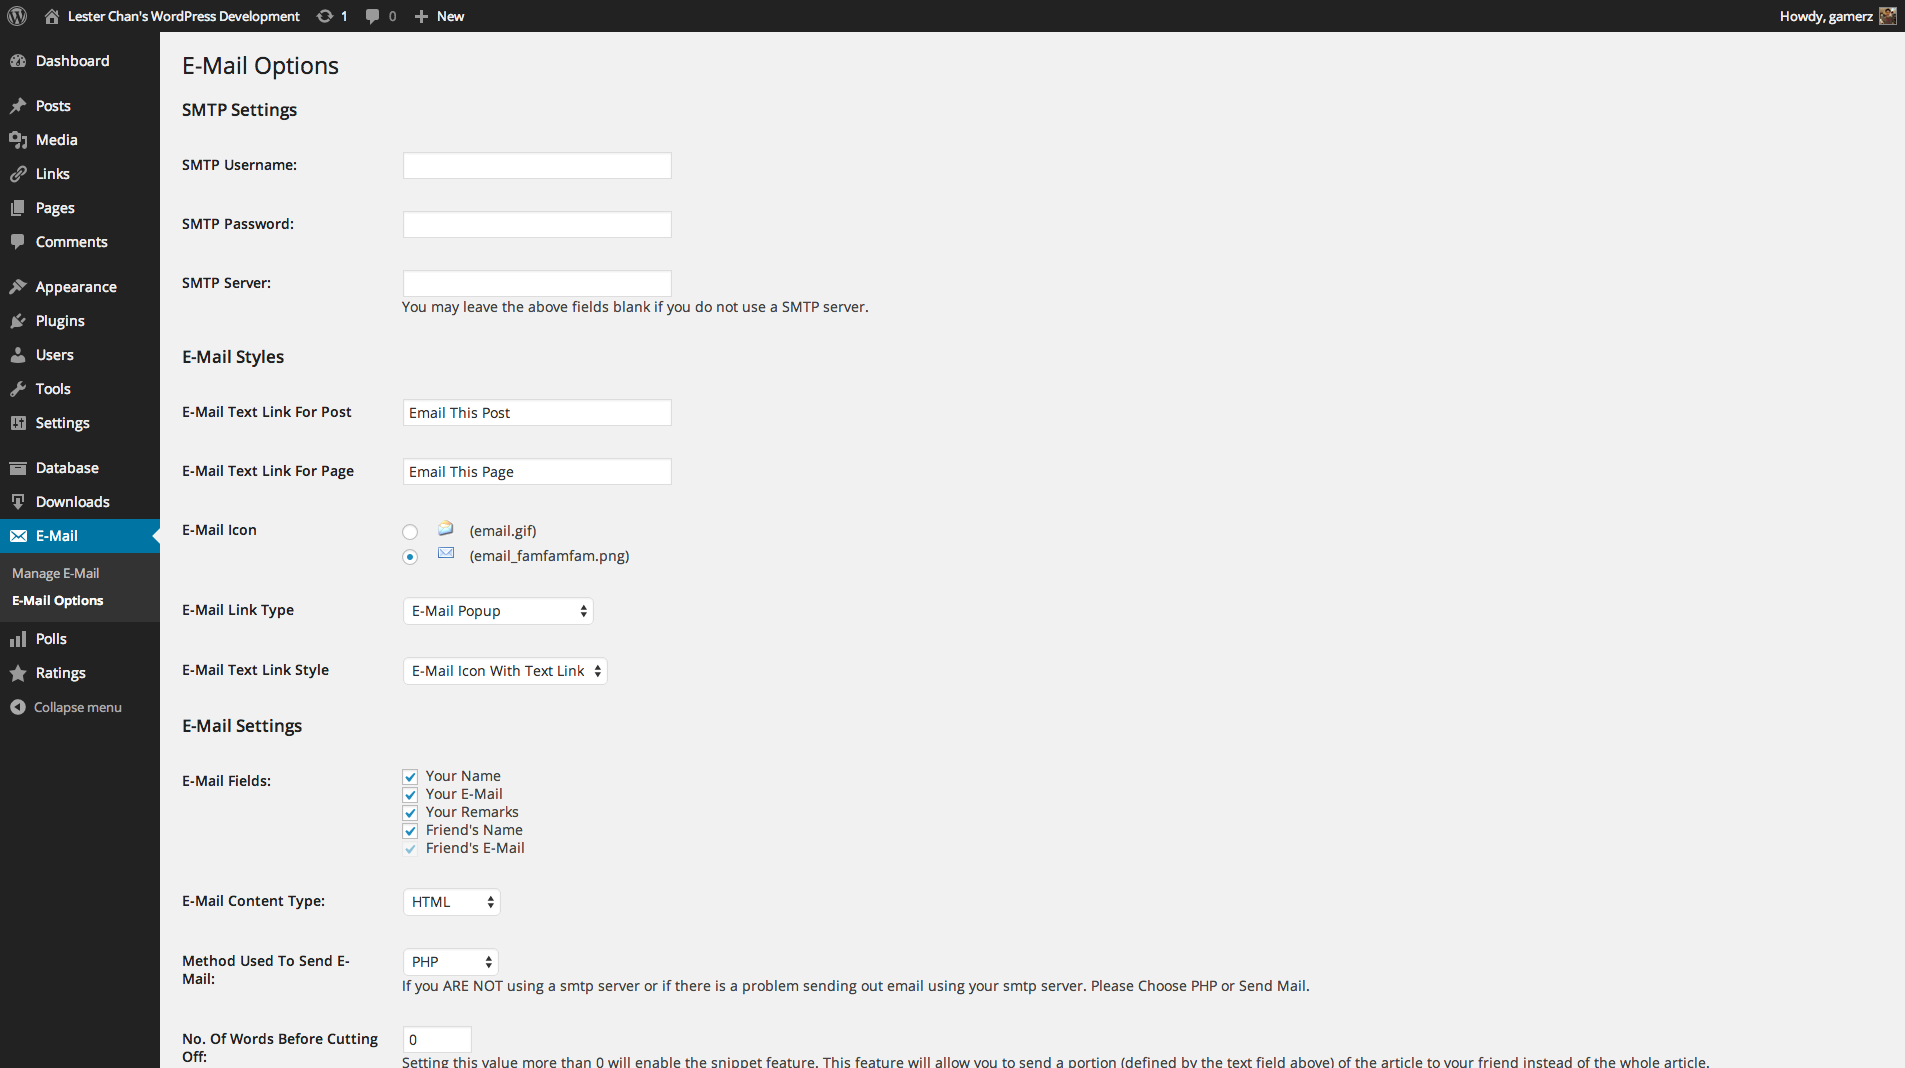 WP-EMail's Screenshot: Admin - Options Page